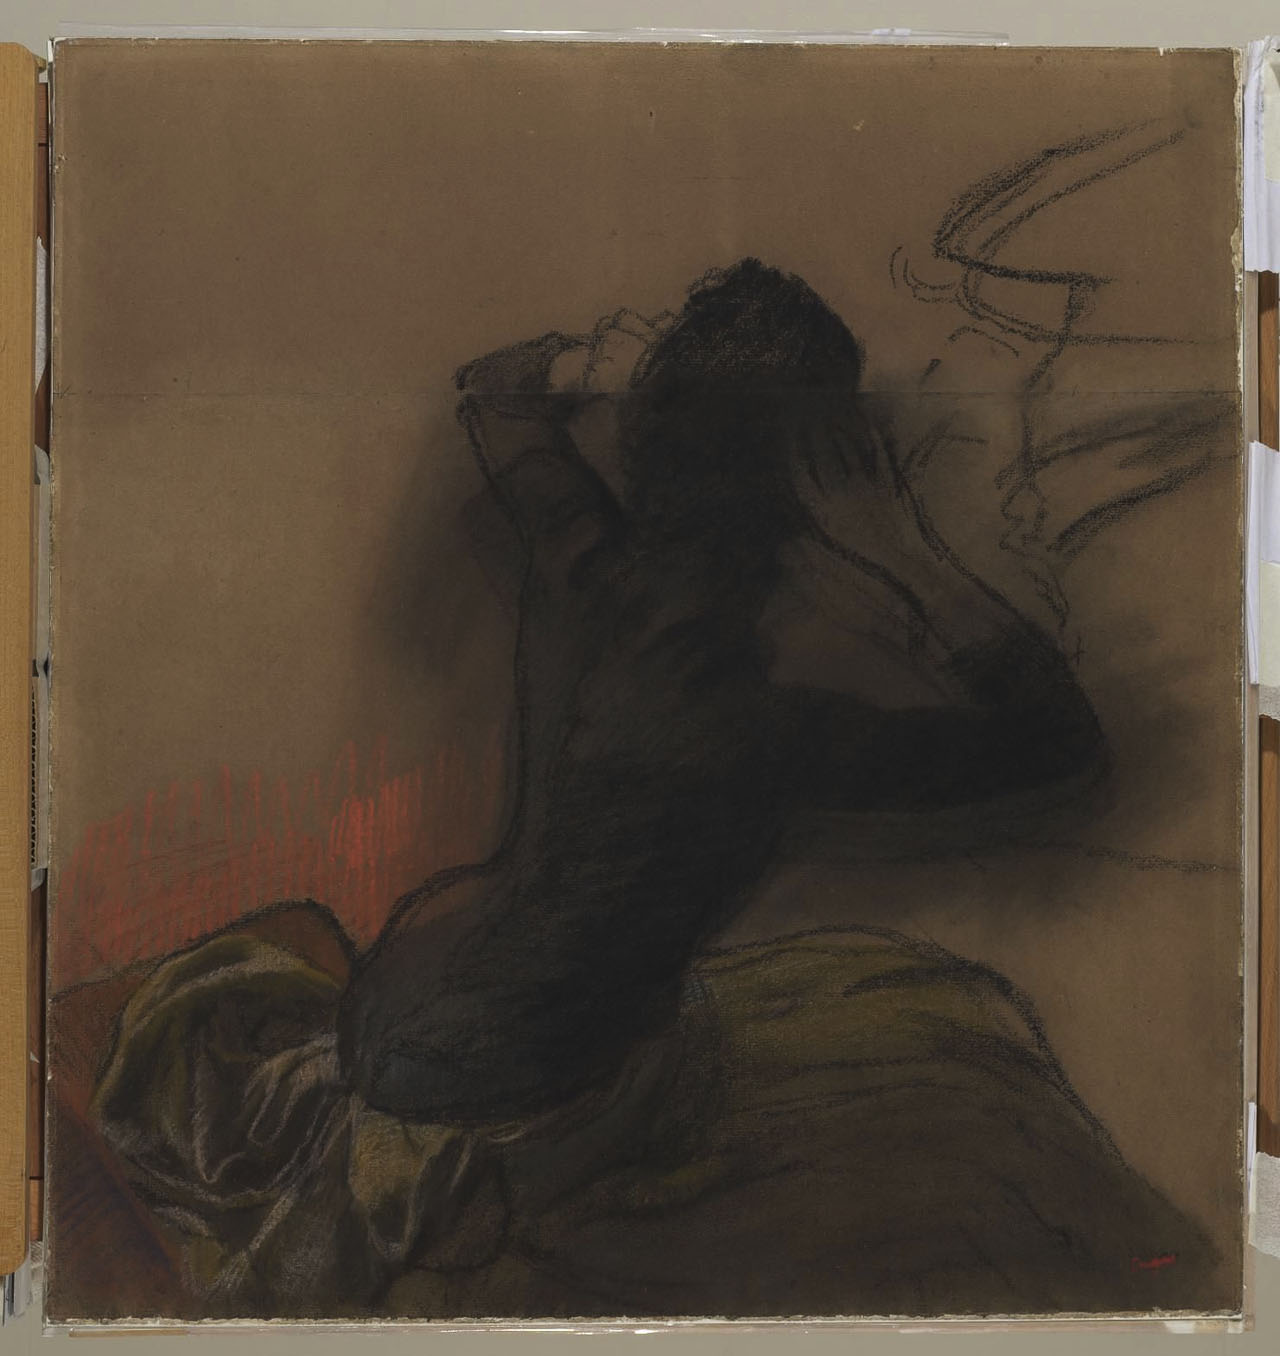 Edgar Degas: Woman Adjusting Her Hair, Courtauld D.1948.SC.115